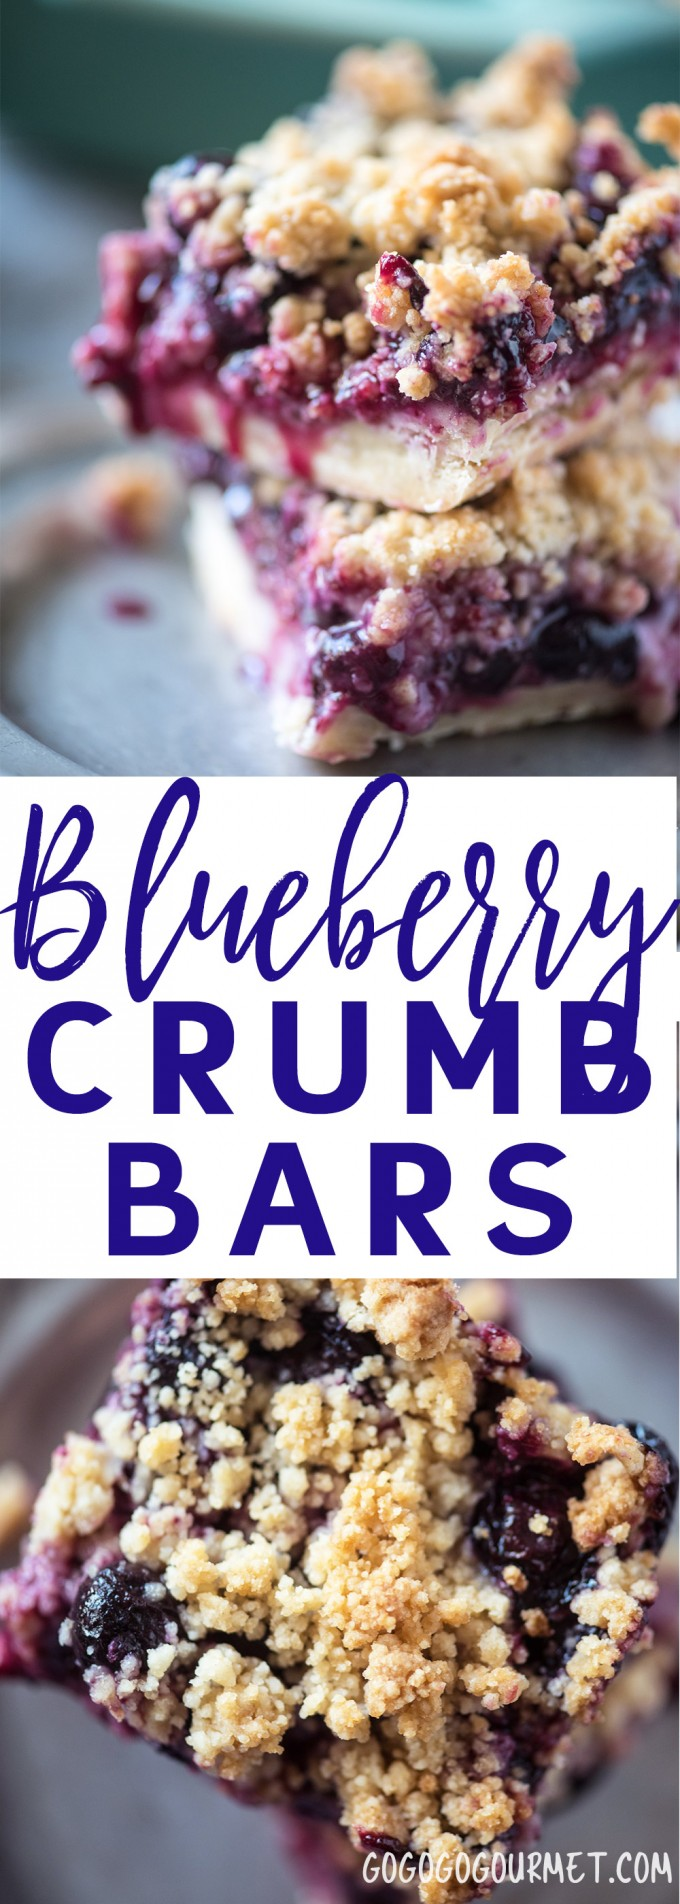 These Blueberry Crumb Bars are basically a portable Blueberry Crumb Pie that you eat with your hands! |